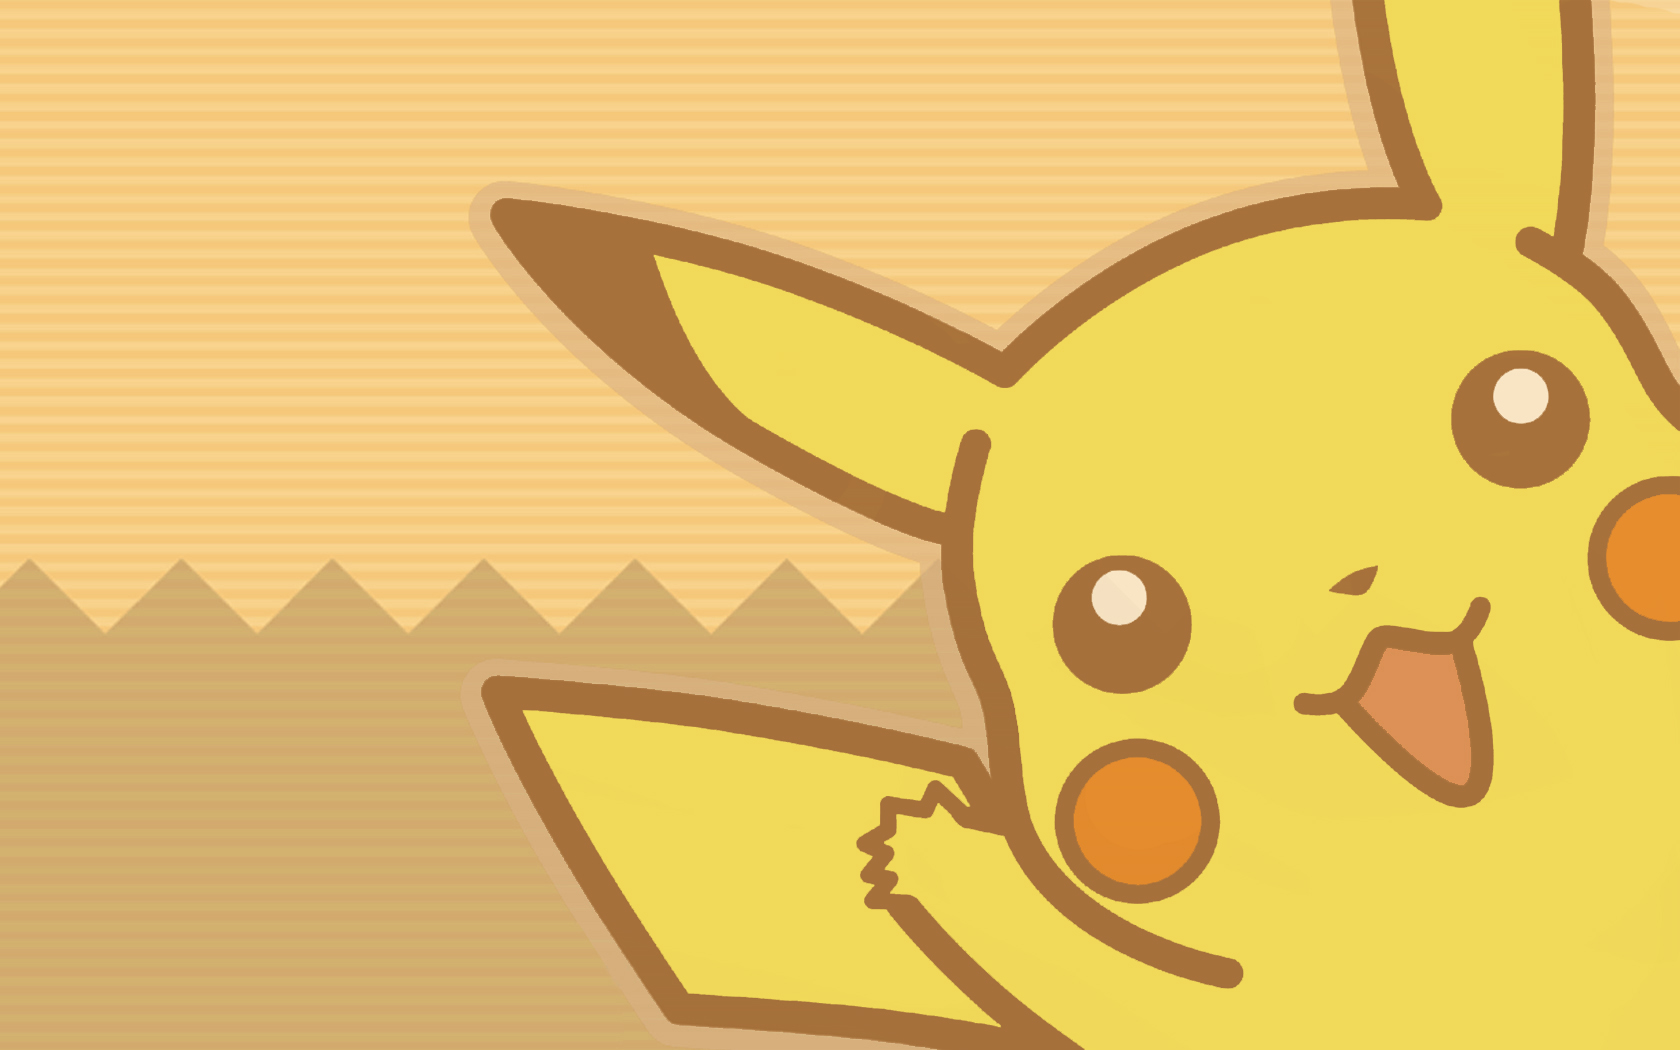 Pikachu Pokemon - 1680x1050